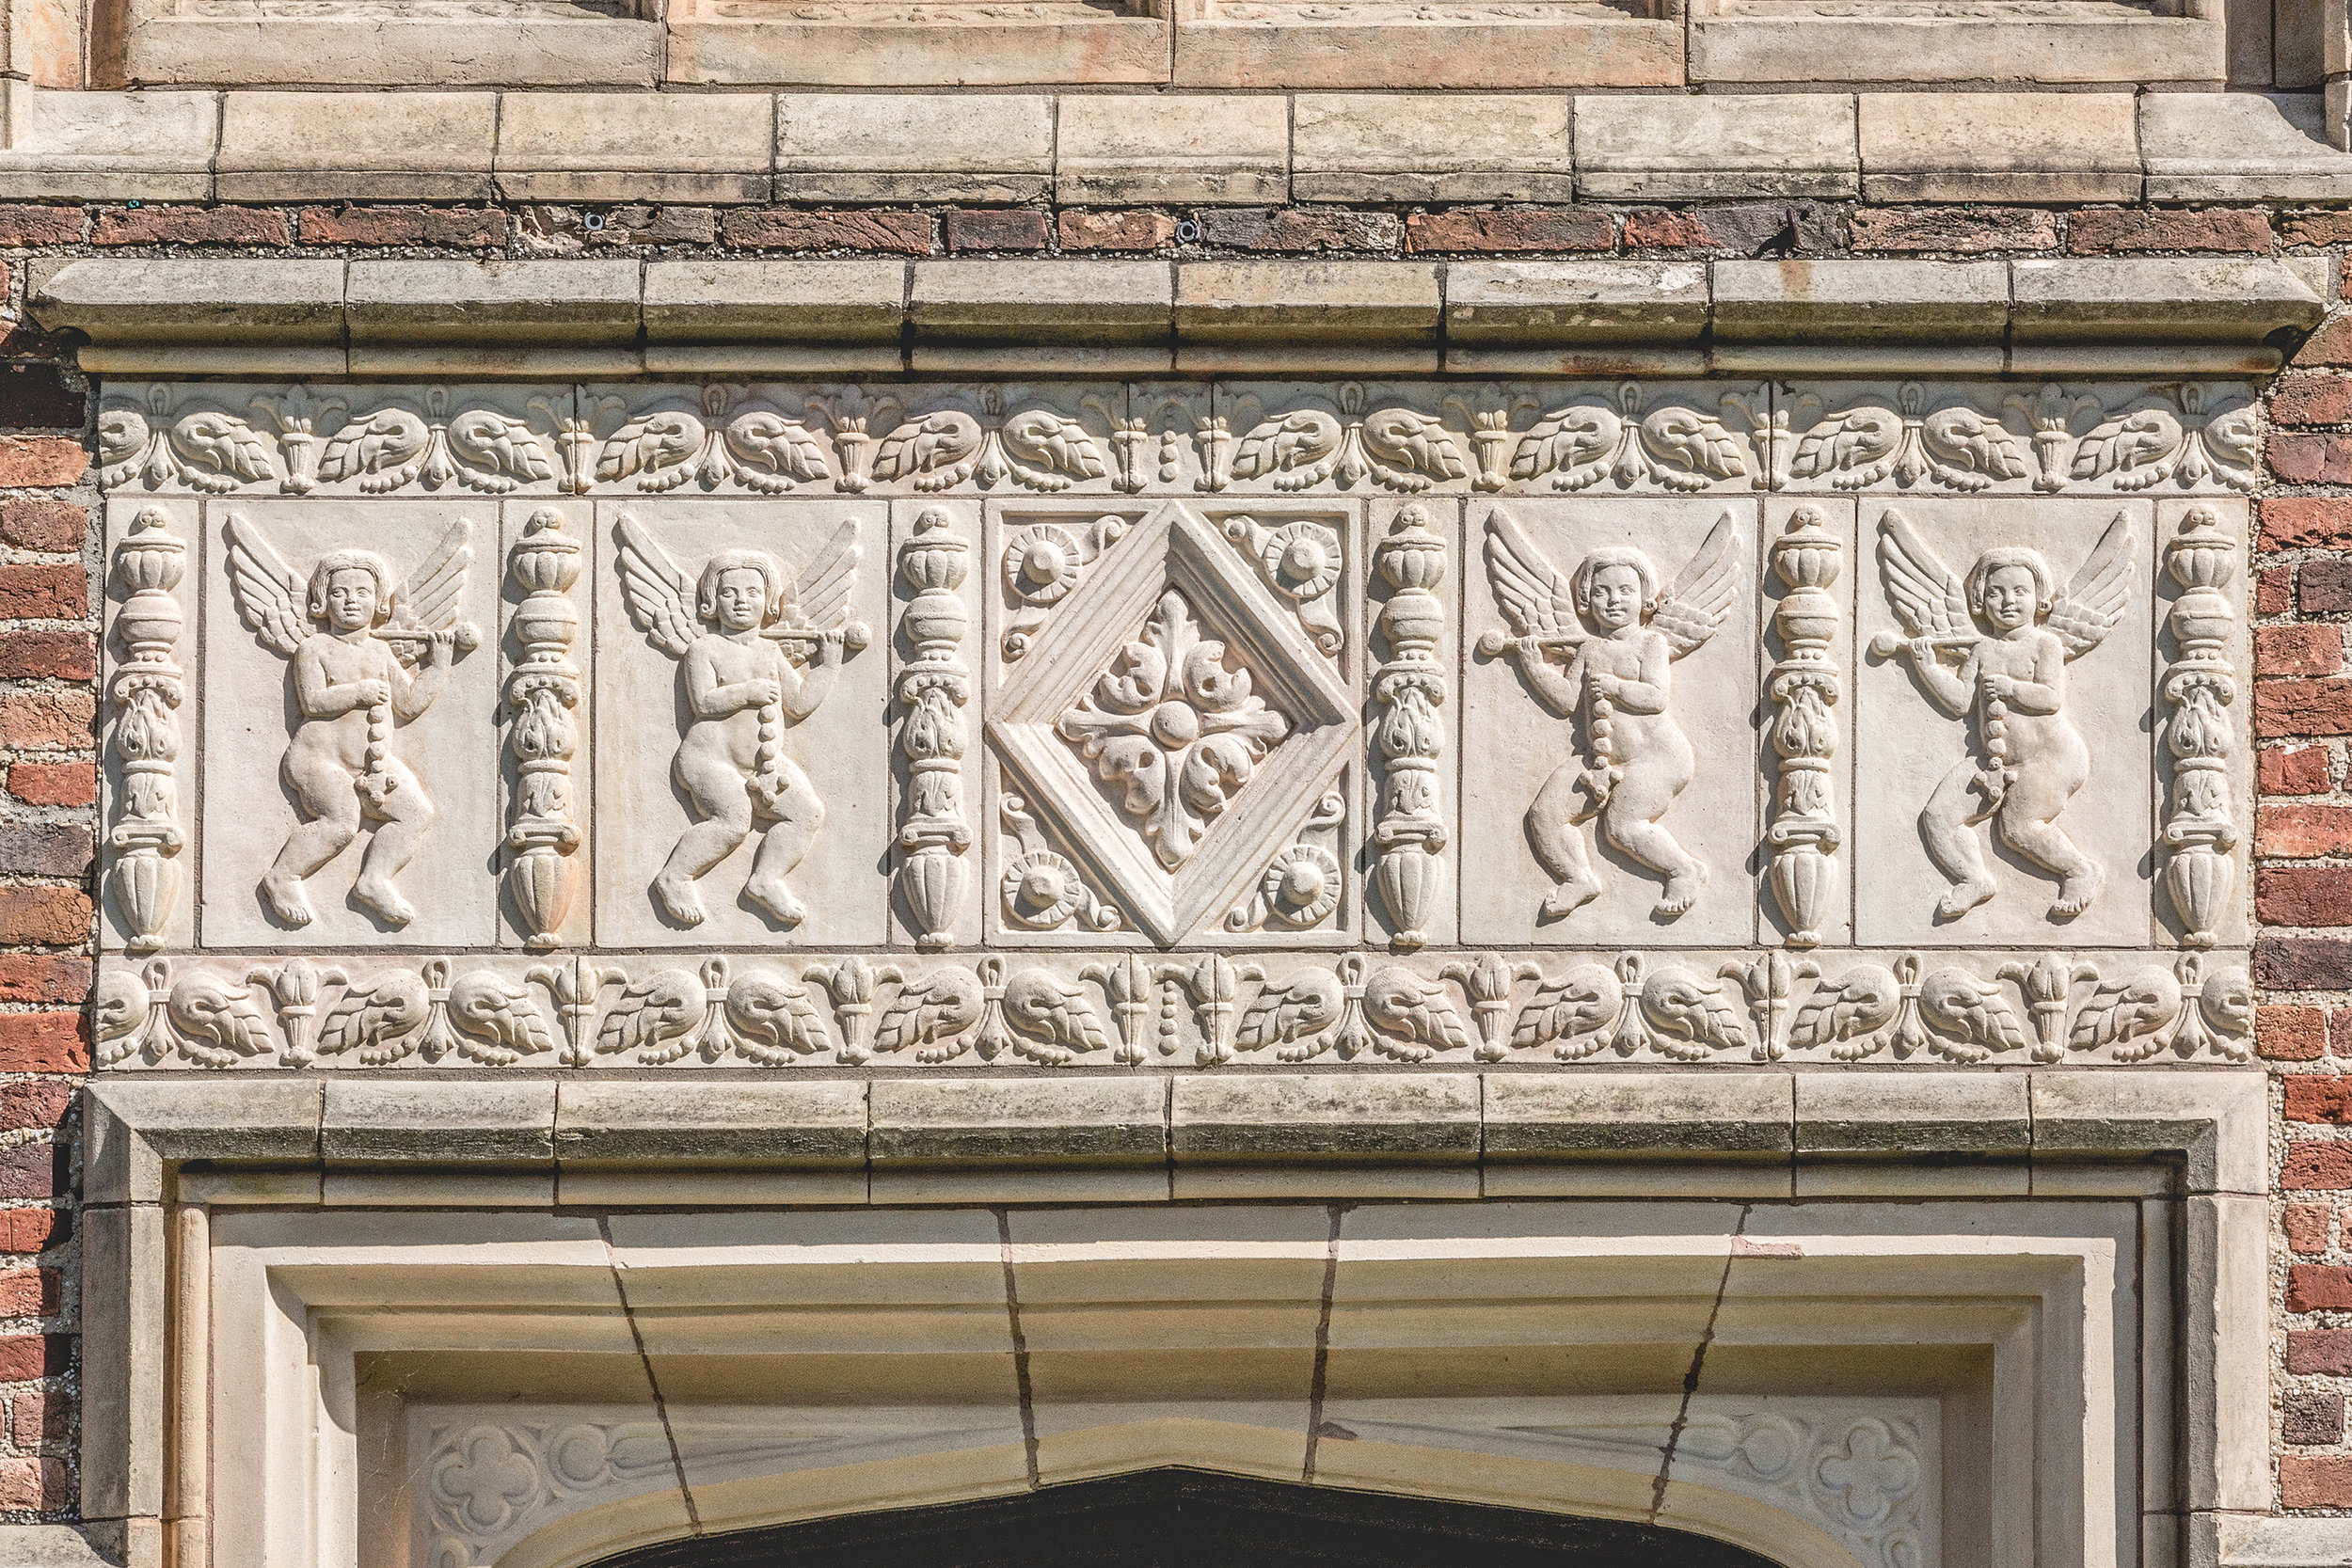 Terracotta carvings of amorini above Guildford's west entrance doors are identical to those at Sutton Place in England.